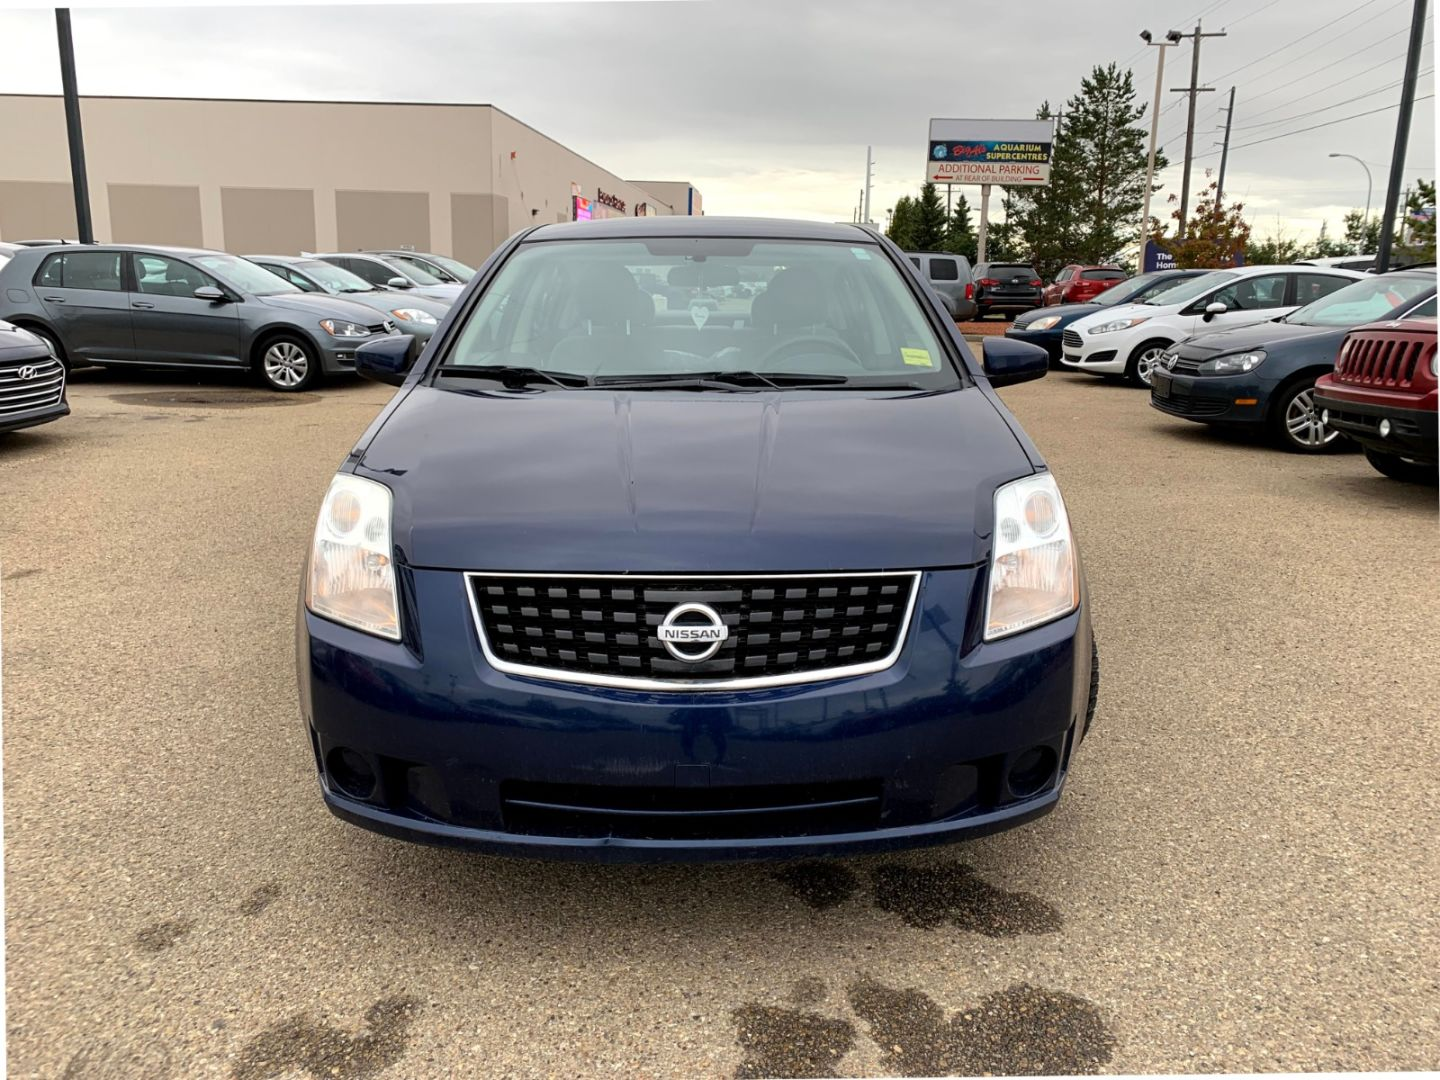 2009 Nissan Sentra 2.0 for sale in Edmonton, Alberta